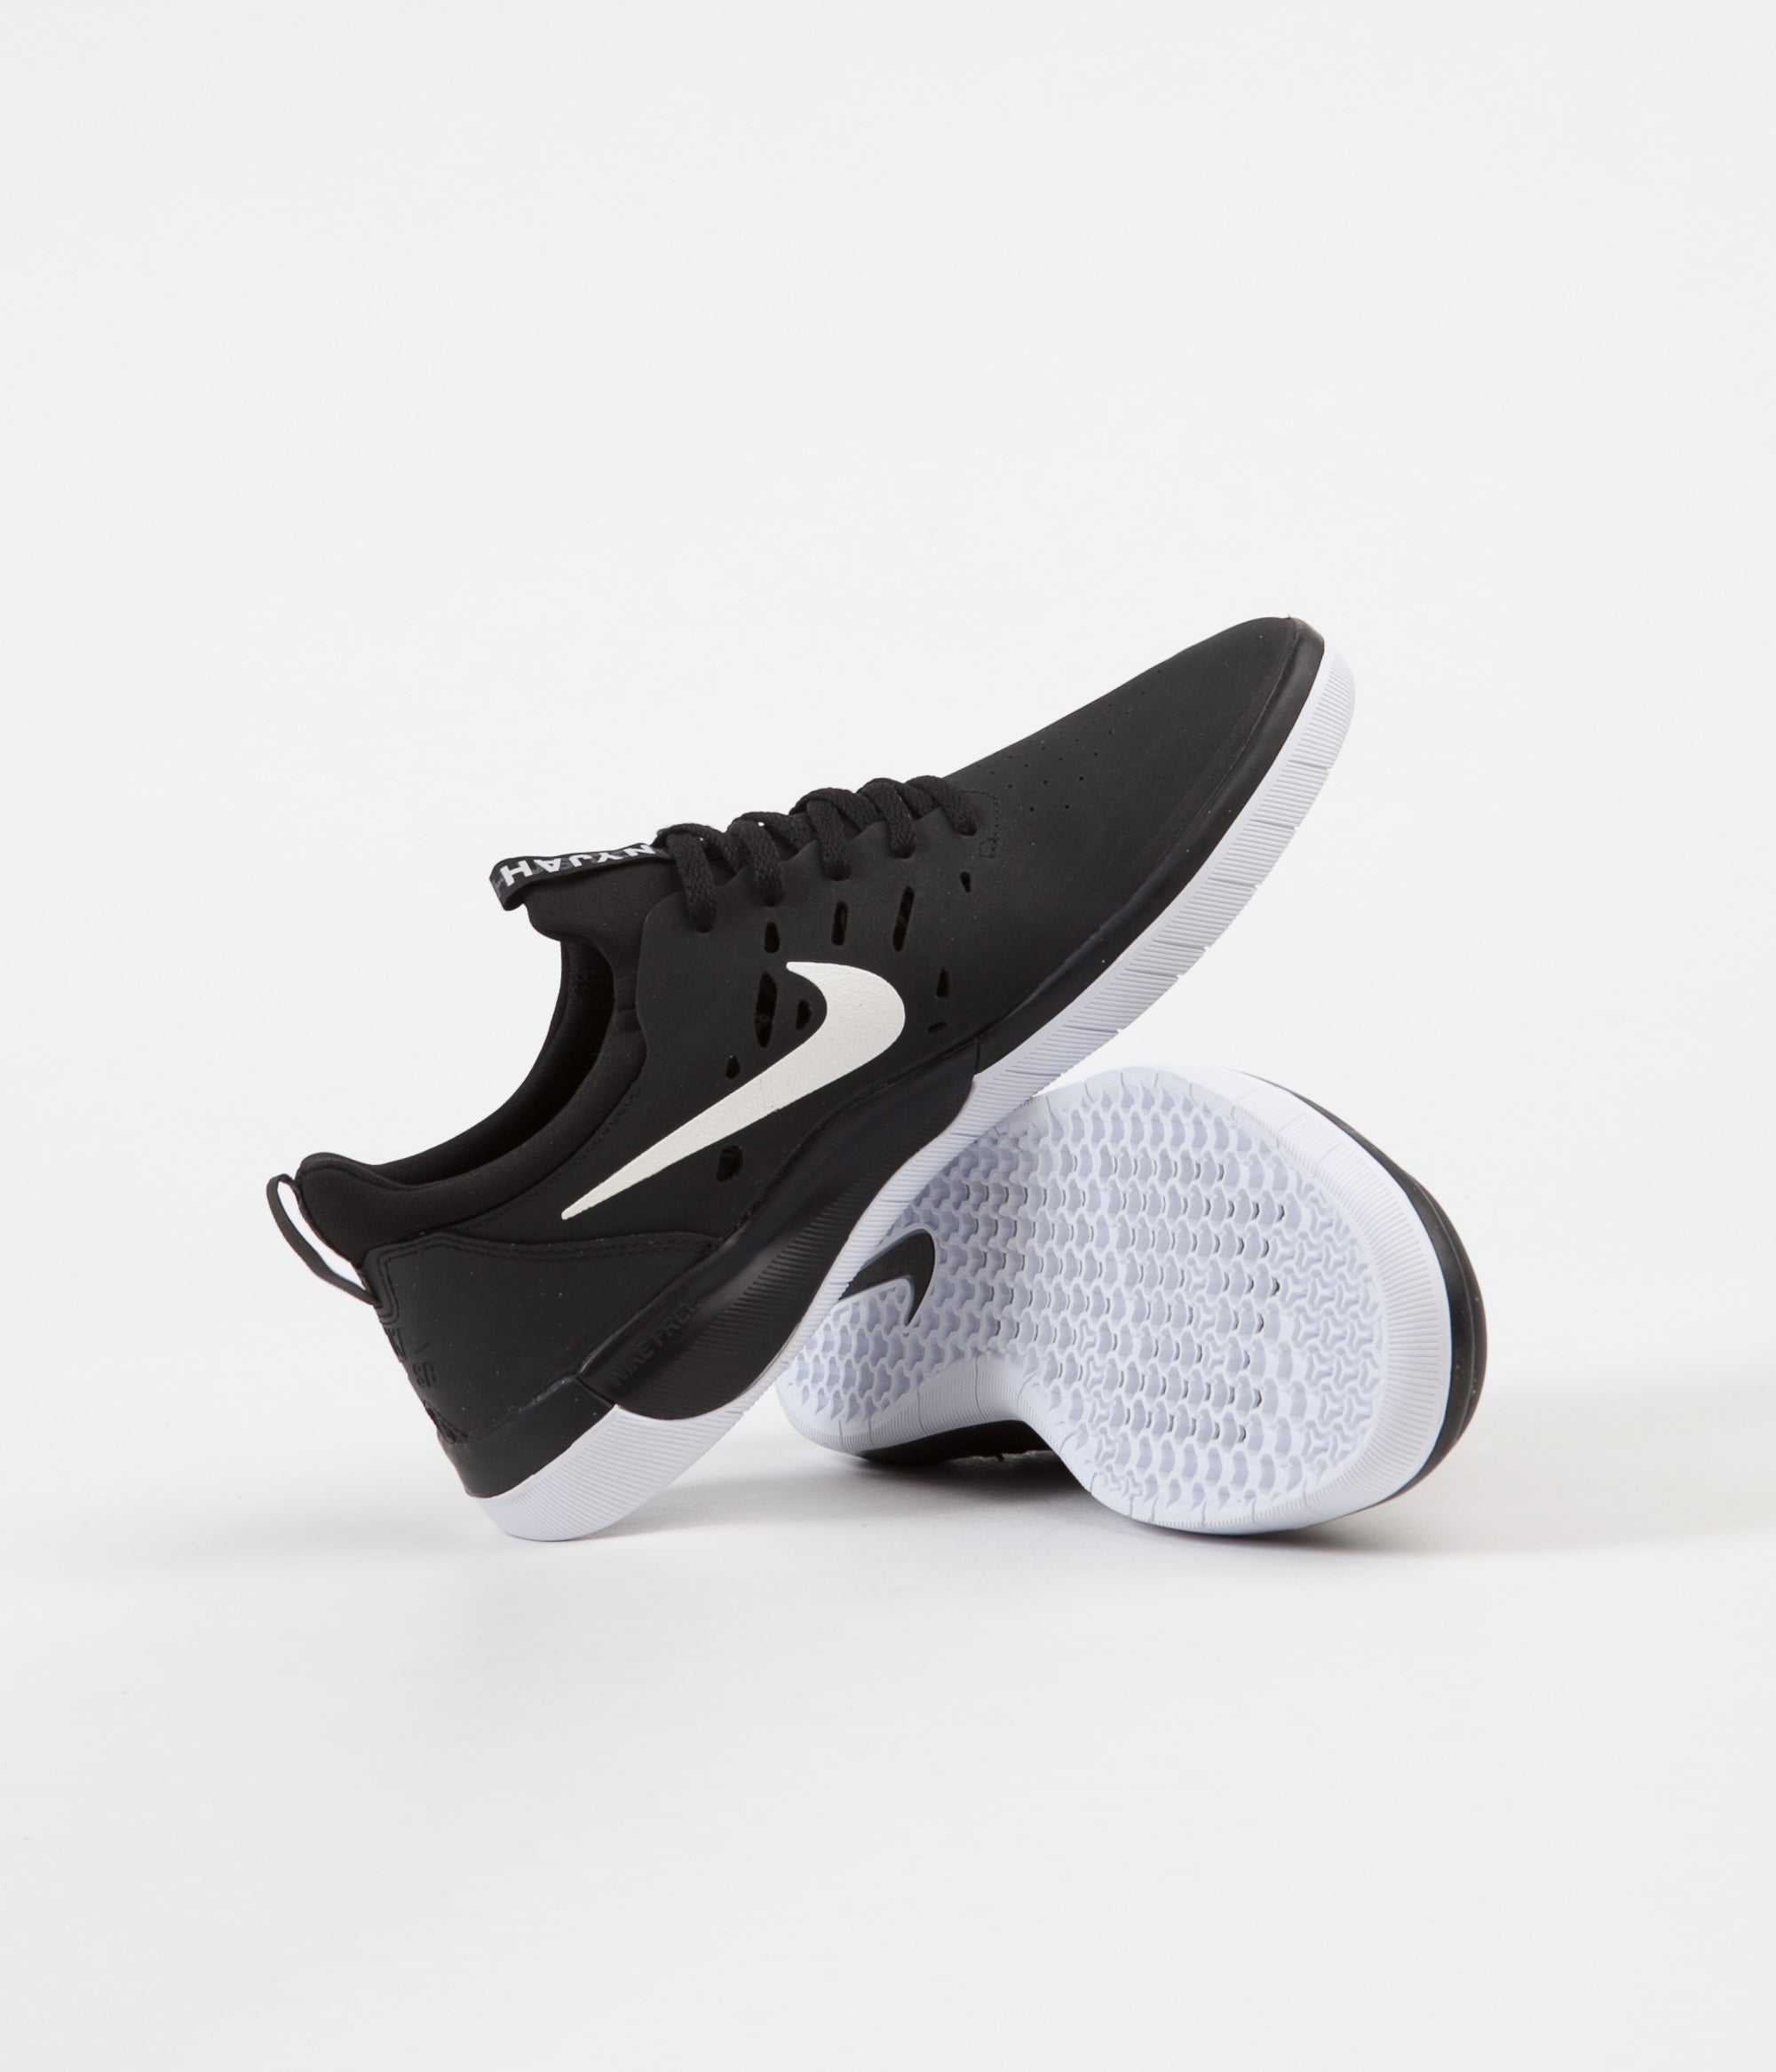 Nike SB Nyjah Free Shoes - Black / White